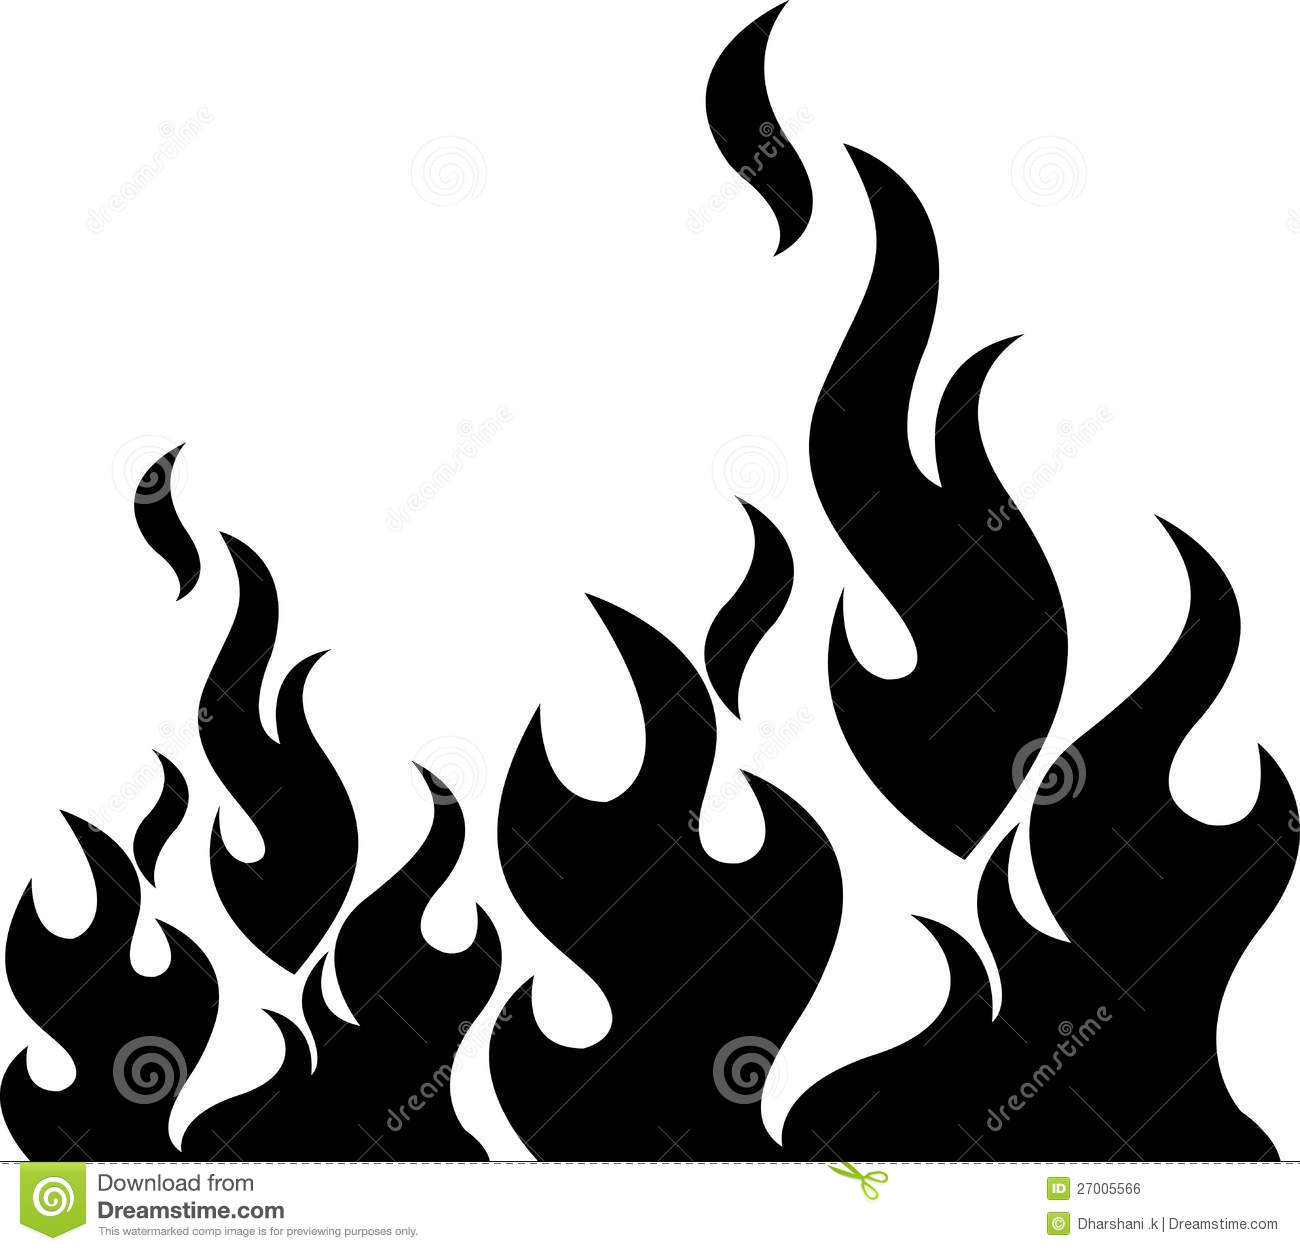 Black flame stock vector. Image of abstract, artwork ...